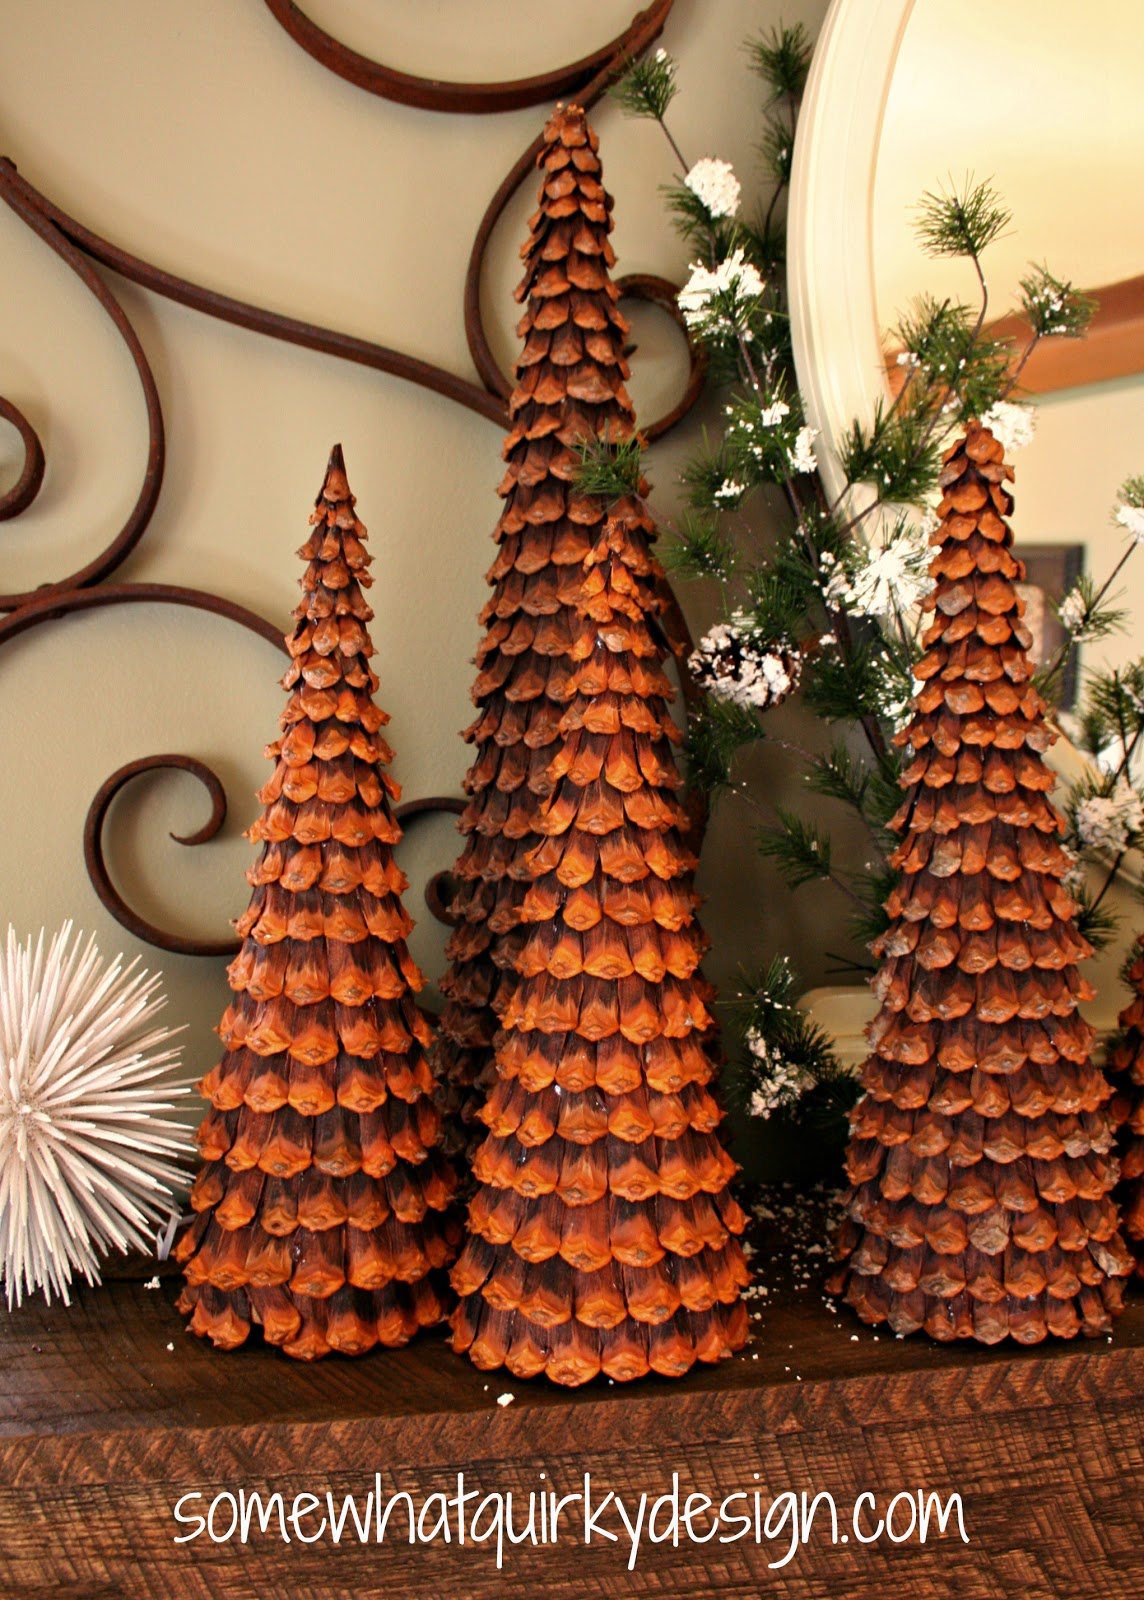 Christmas Decorations Cone Trees : Somewhat quirky pine cone christmas trees